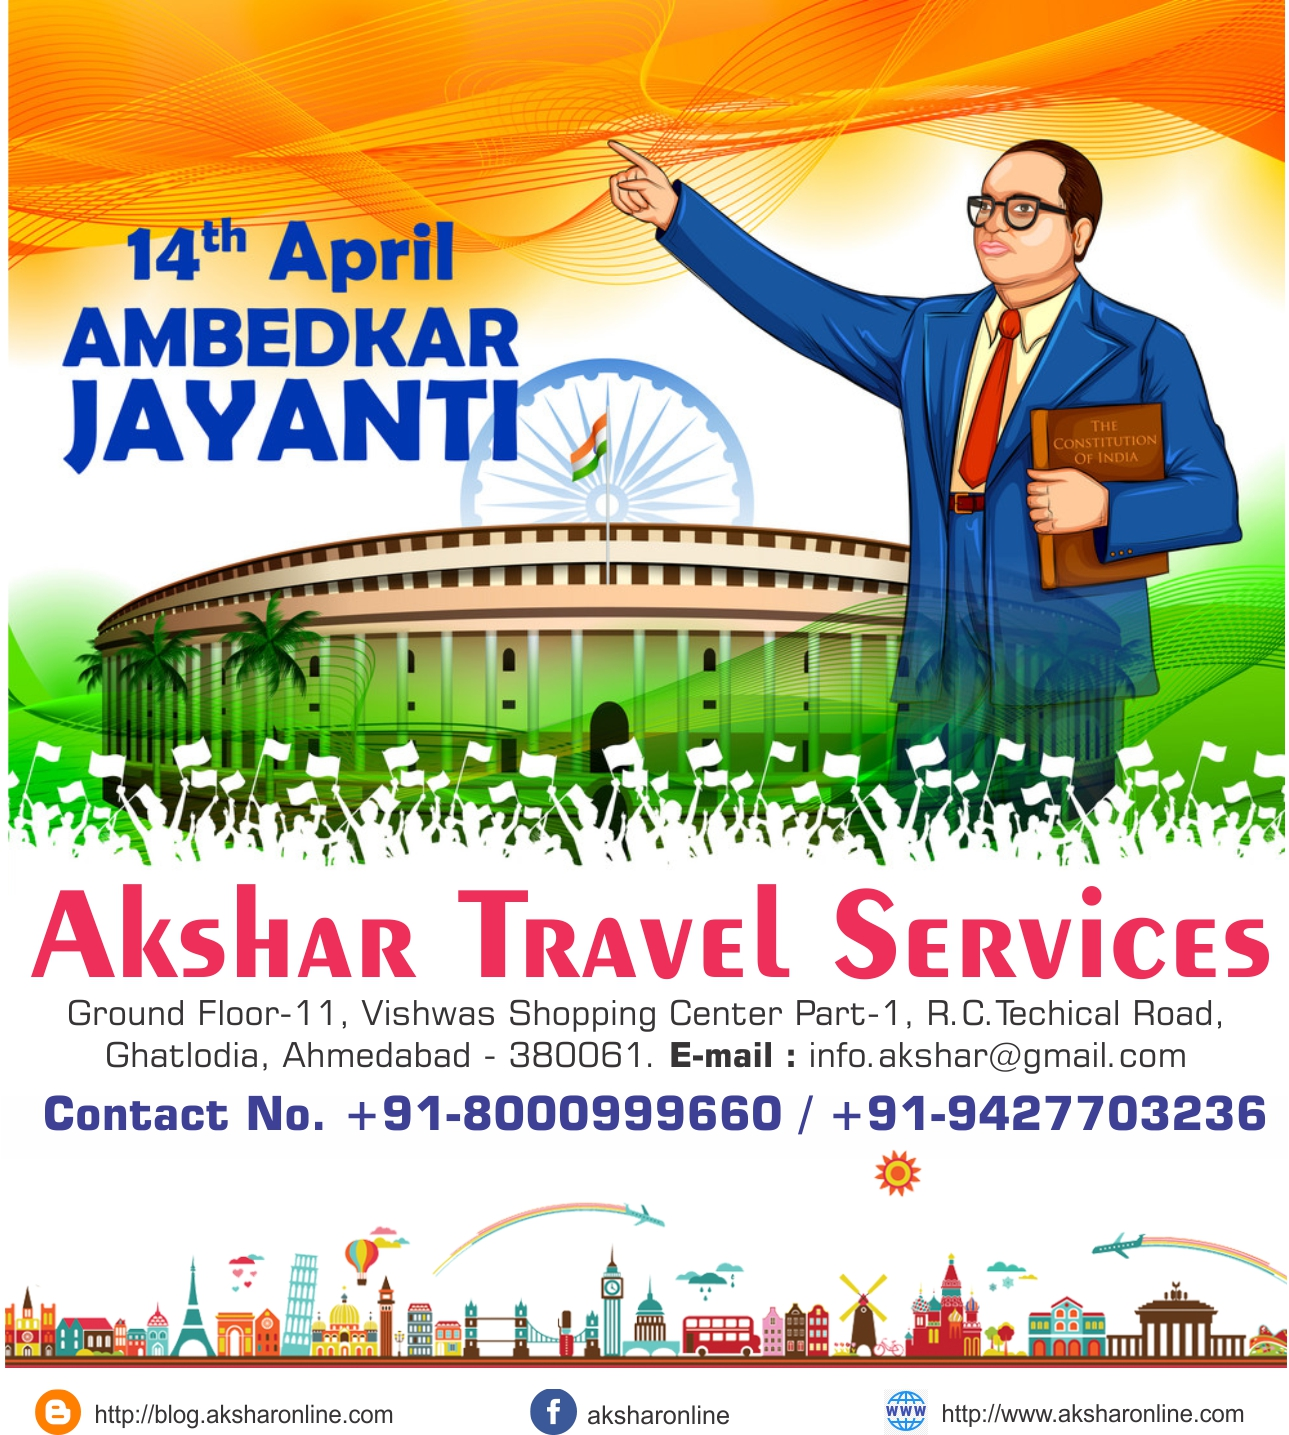 14th April - Ambedkar Jayanti - On the Occasion of Dr Bhimrao Ramji Ambedkar's Birthday, May We Learn From Him the Spirit of Self-confidence and Will to Fight Against Oppression! Happy Ambedkar Jayanti!